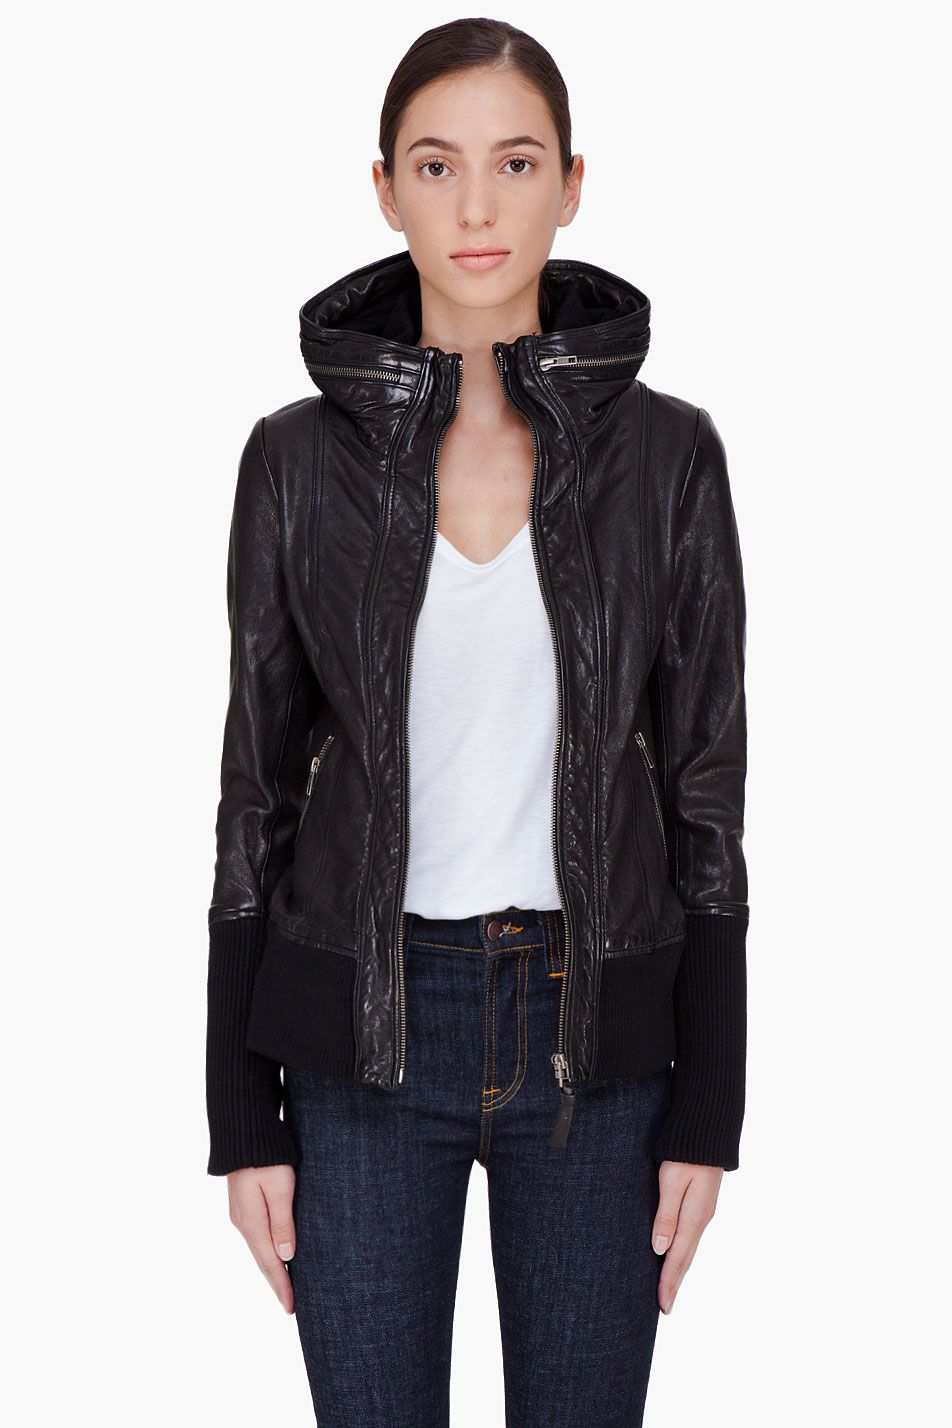 MACKAGE Black Hooded Leather Jacket Ensemble Leather